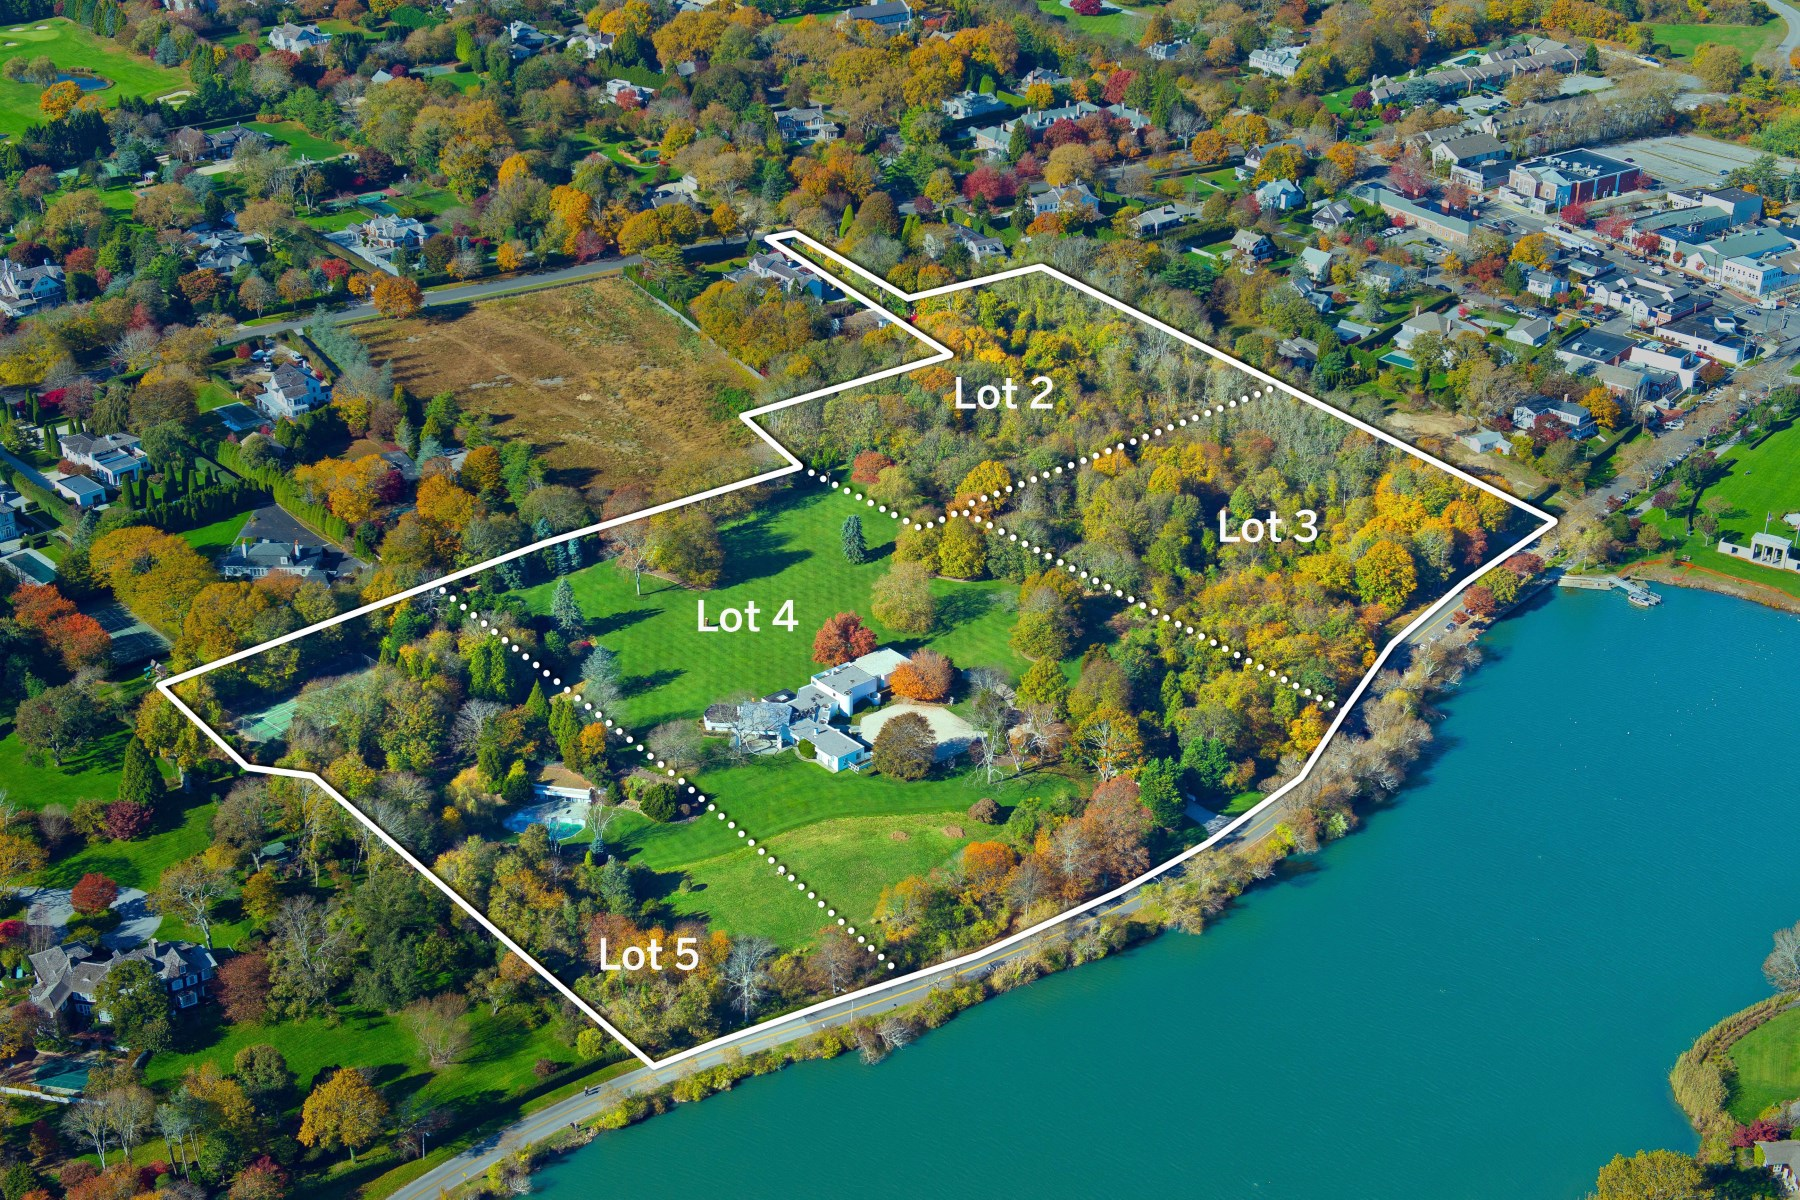 Tek Ailelik Ev için Satış at Overlooking Lake Agawam 111, 137, 153 Pond Lane & 52 First Neck Lane 4 properties combined Southampton Estate Section, Southampton, New York, 11968 Amerika Birleşik Devletleri